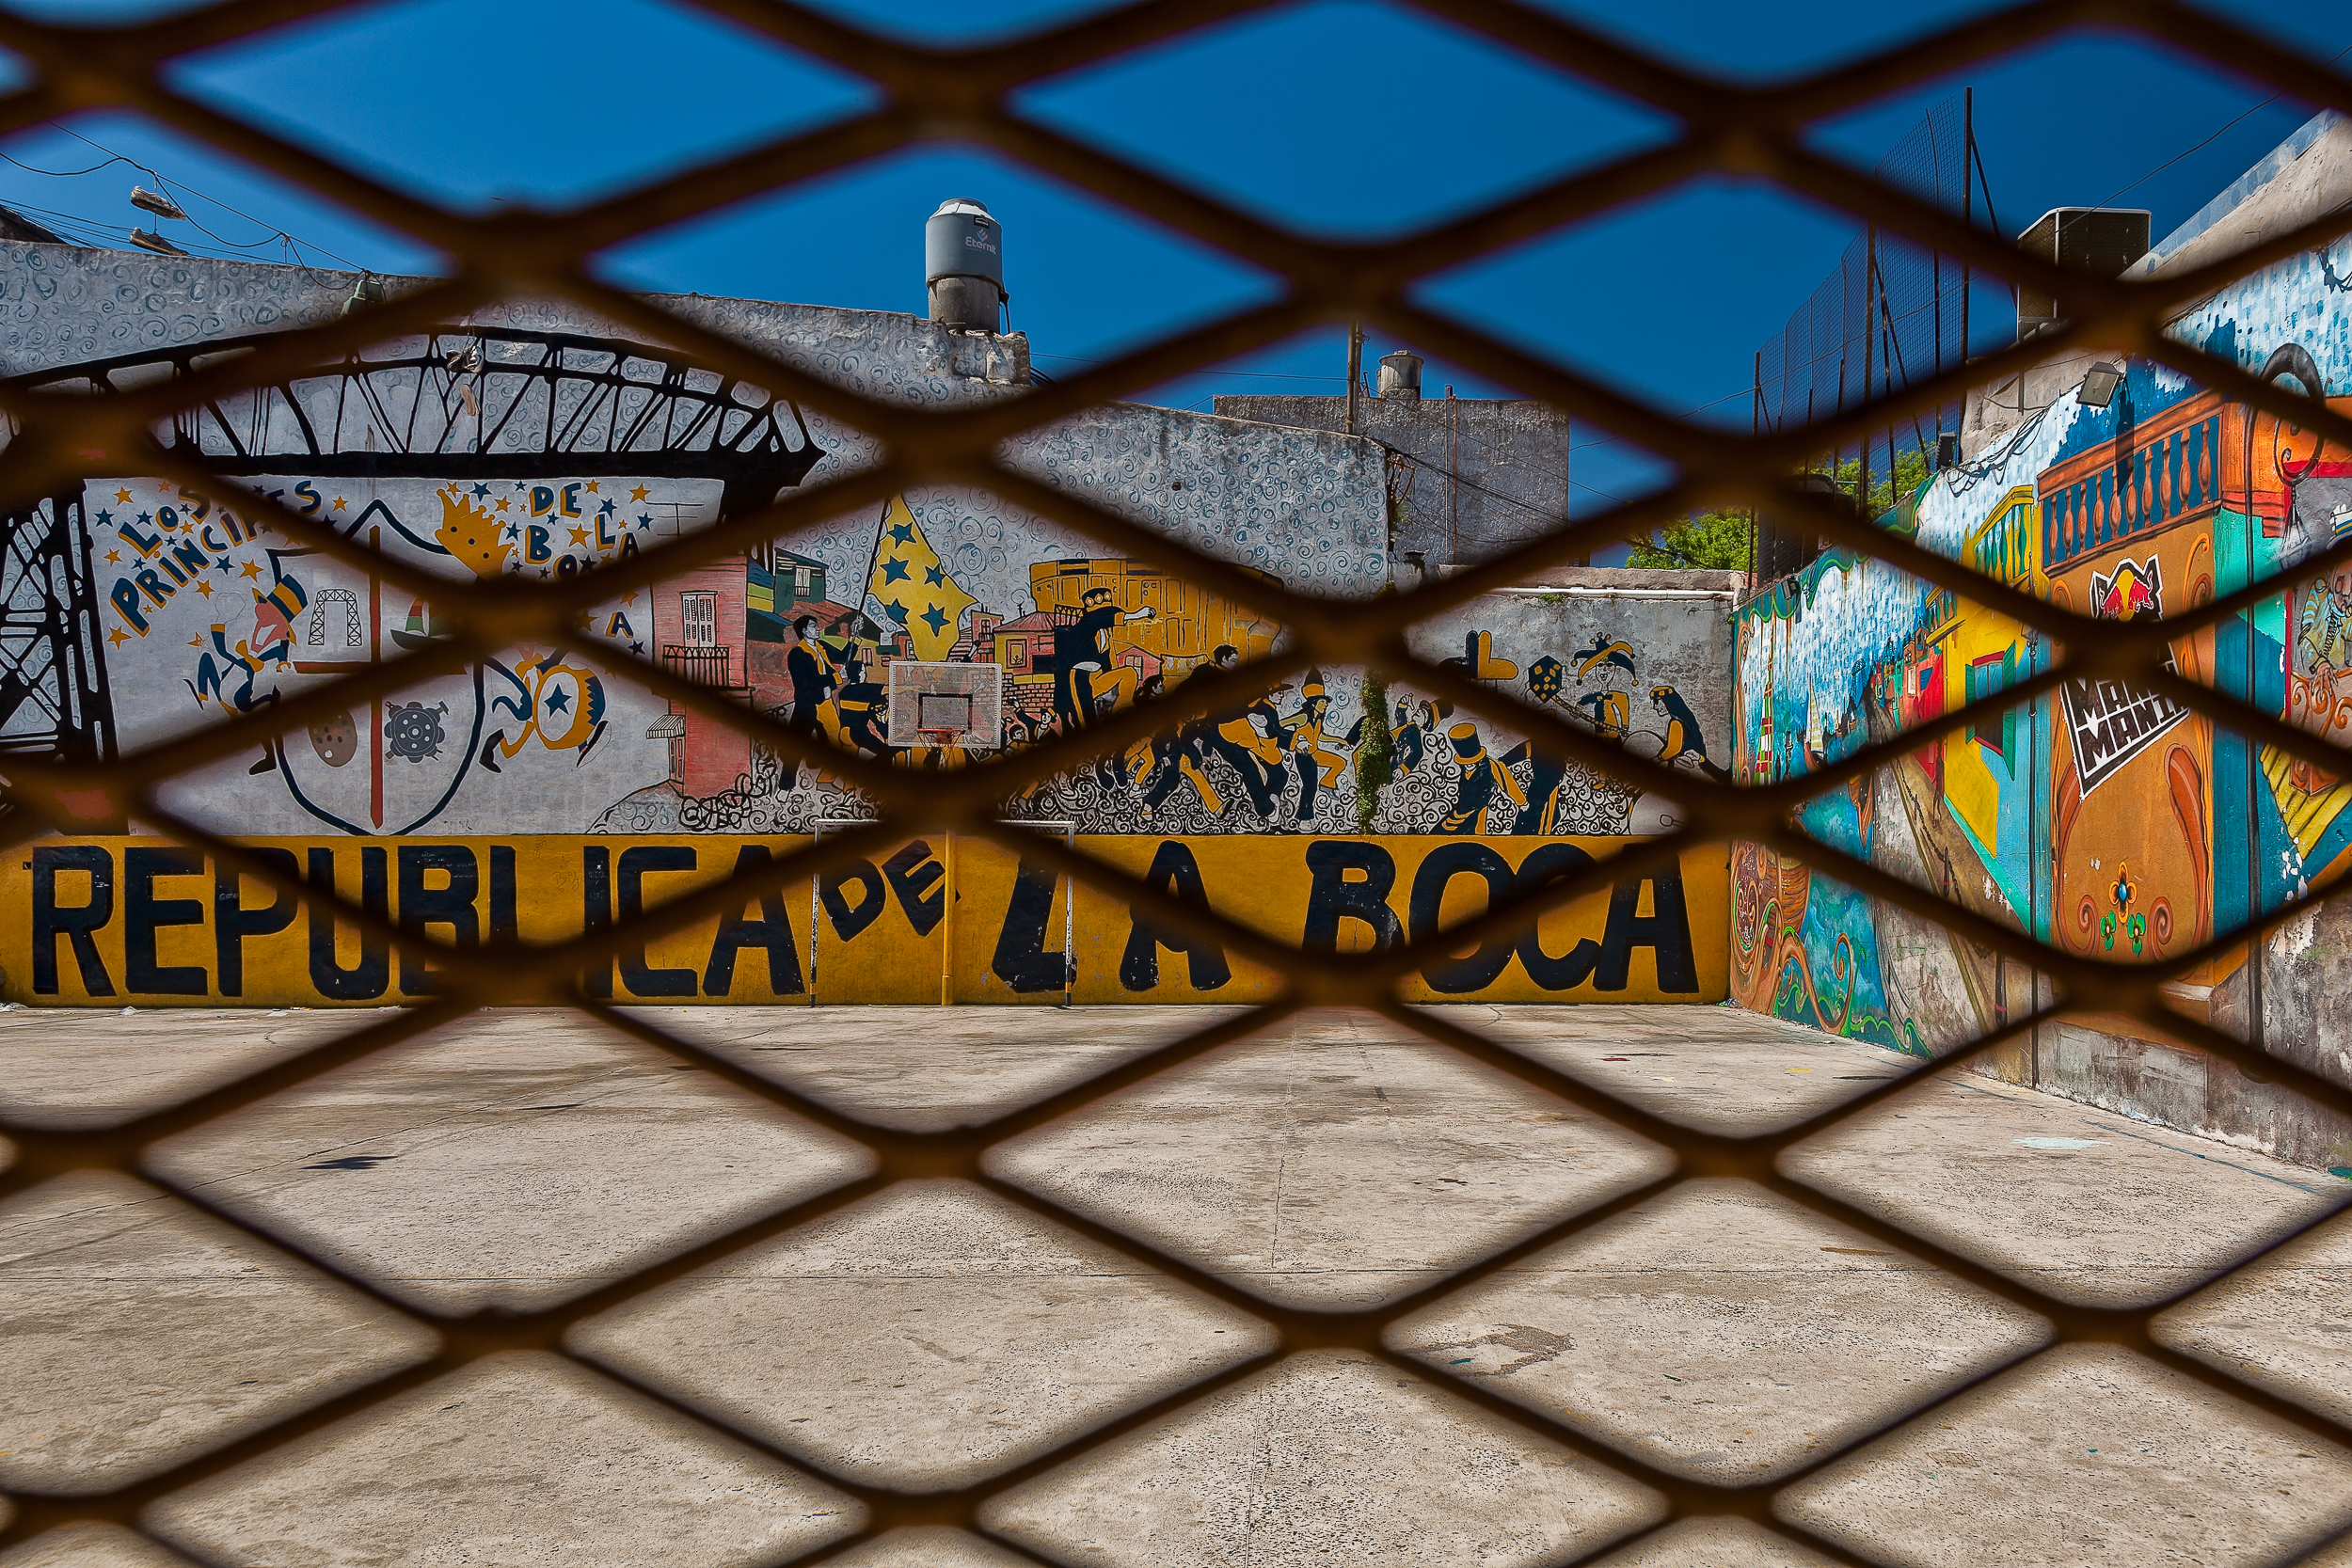 Looking  through the wire  at colorful walls in  La Boca, Buenos Aires, Argentina .